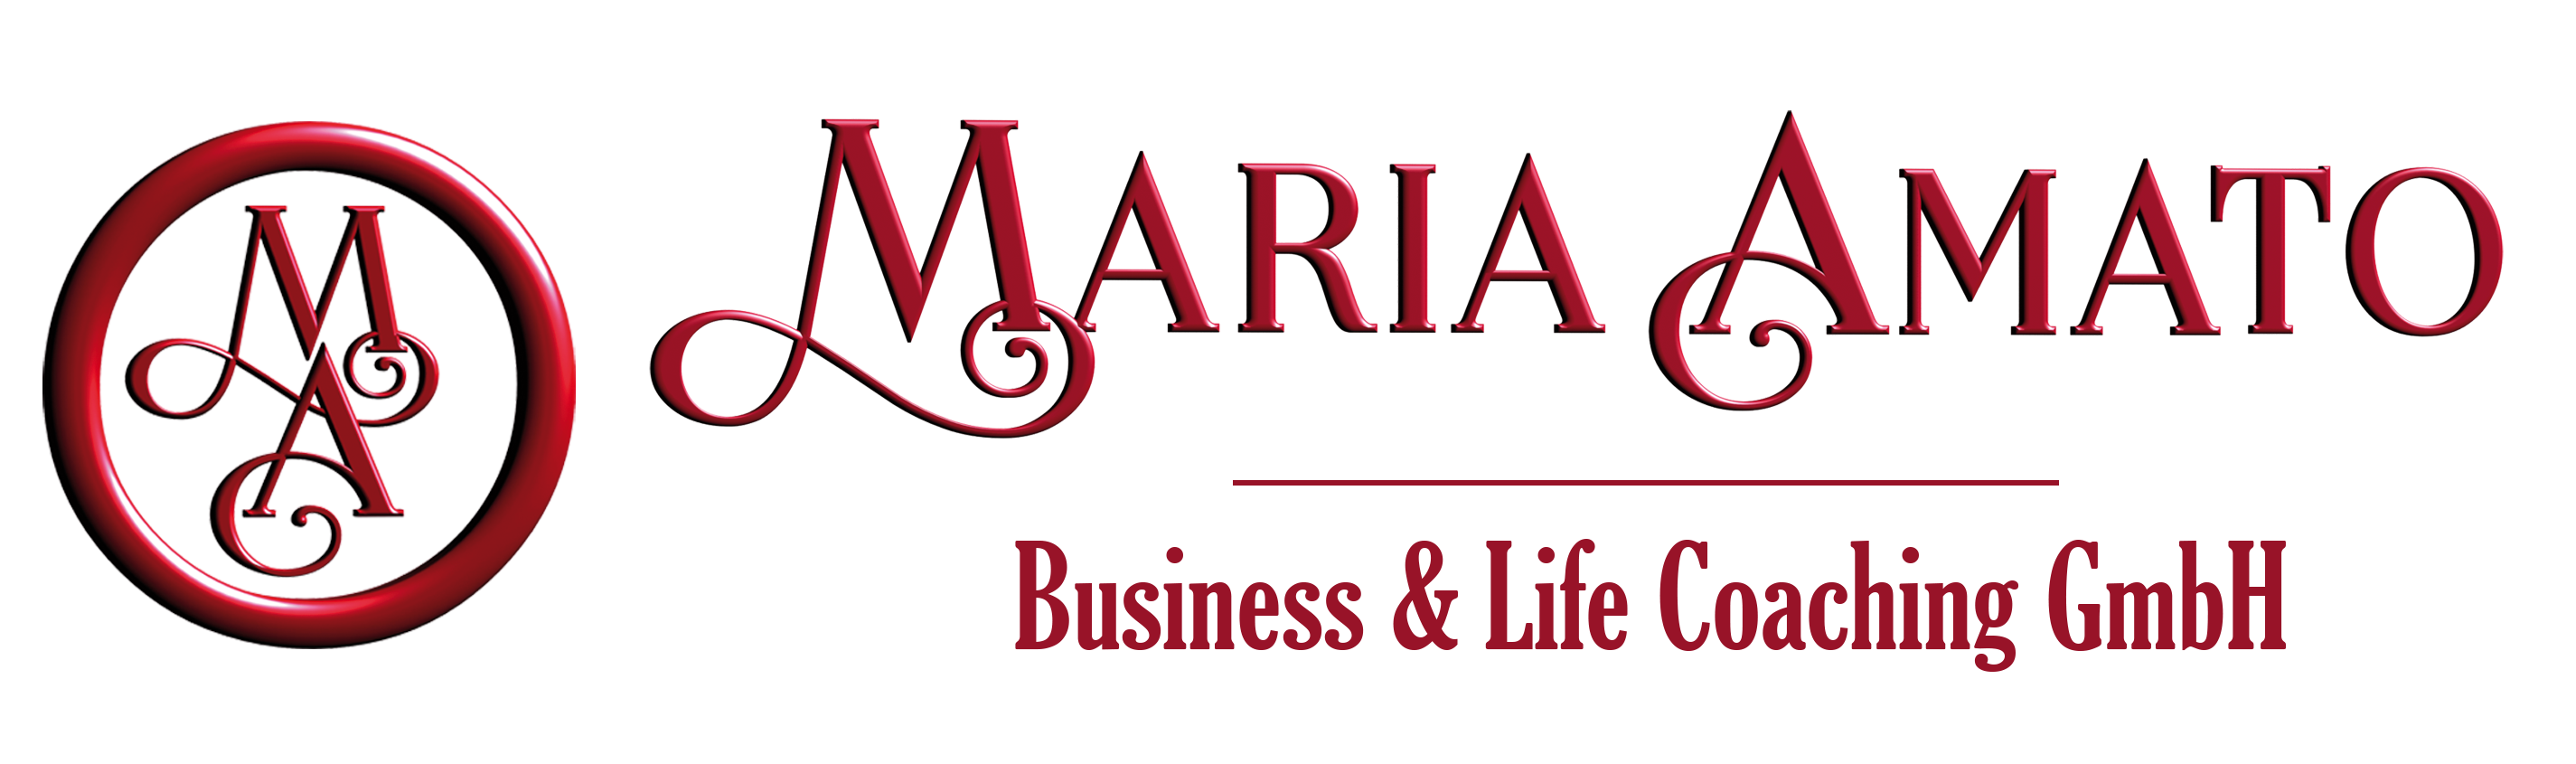 Forderungsmanagement - Maria Amato Business & Life Coaching GmbH